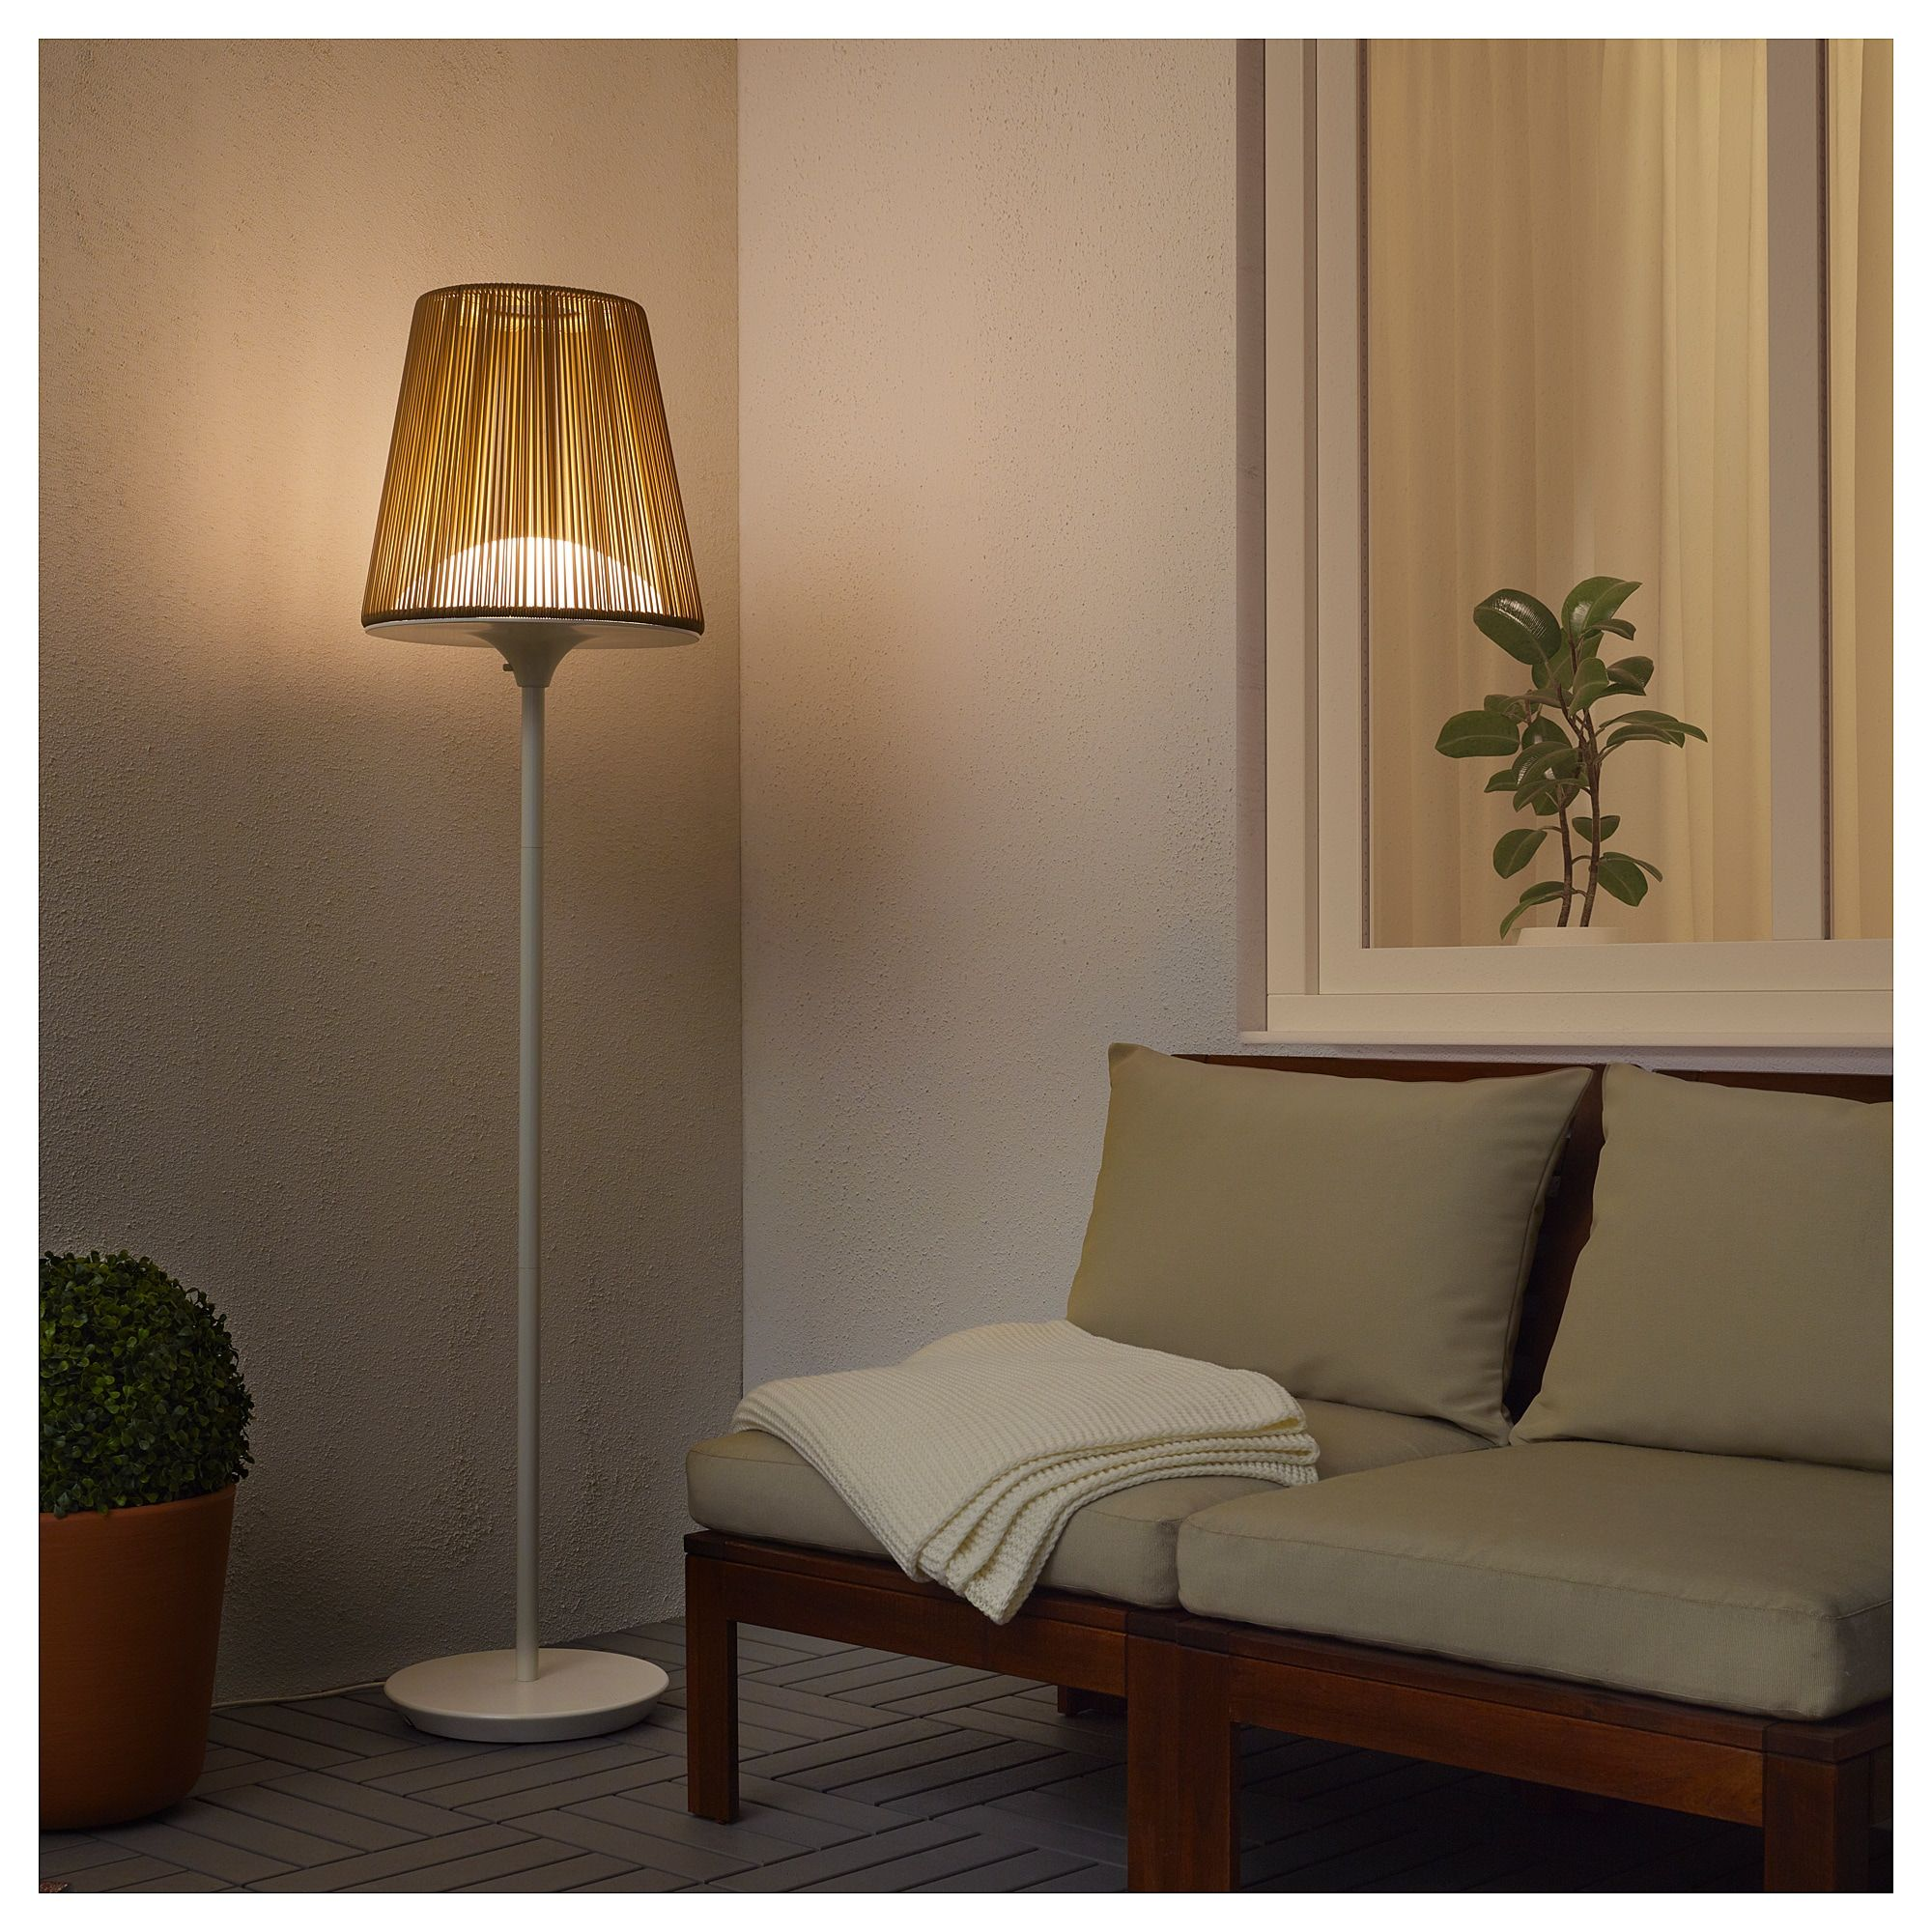 Furniture And Home Furnishings With Images Floor Lamp Ikea